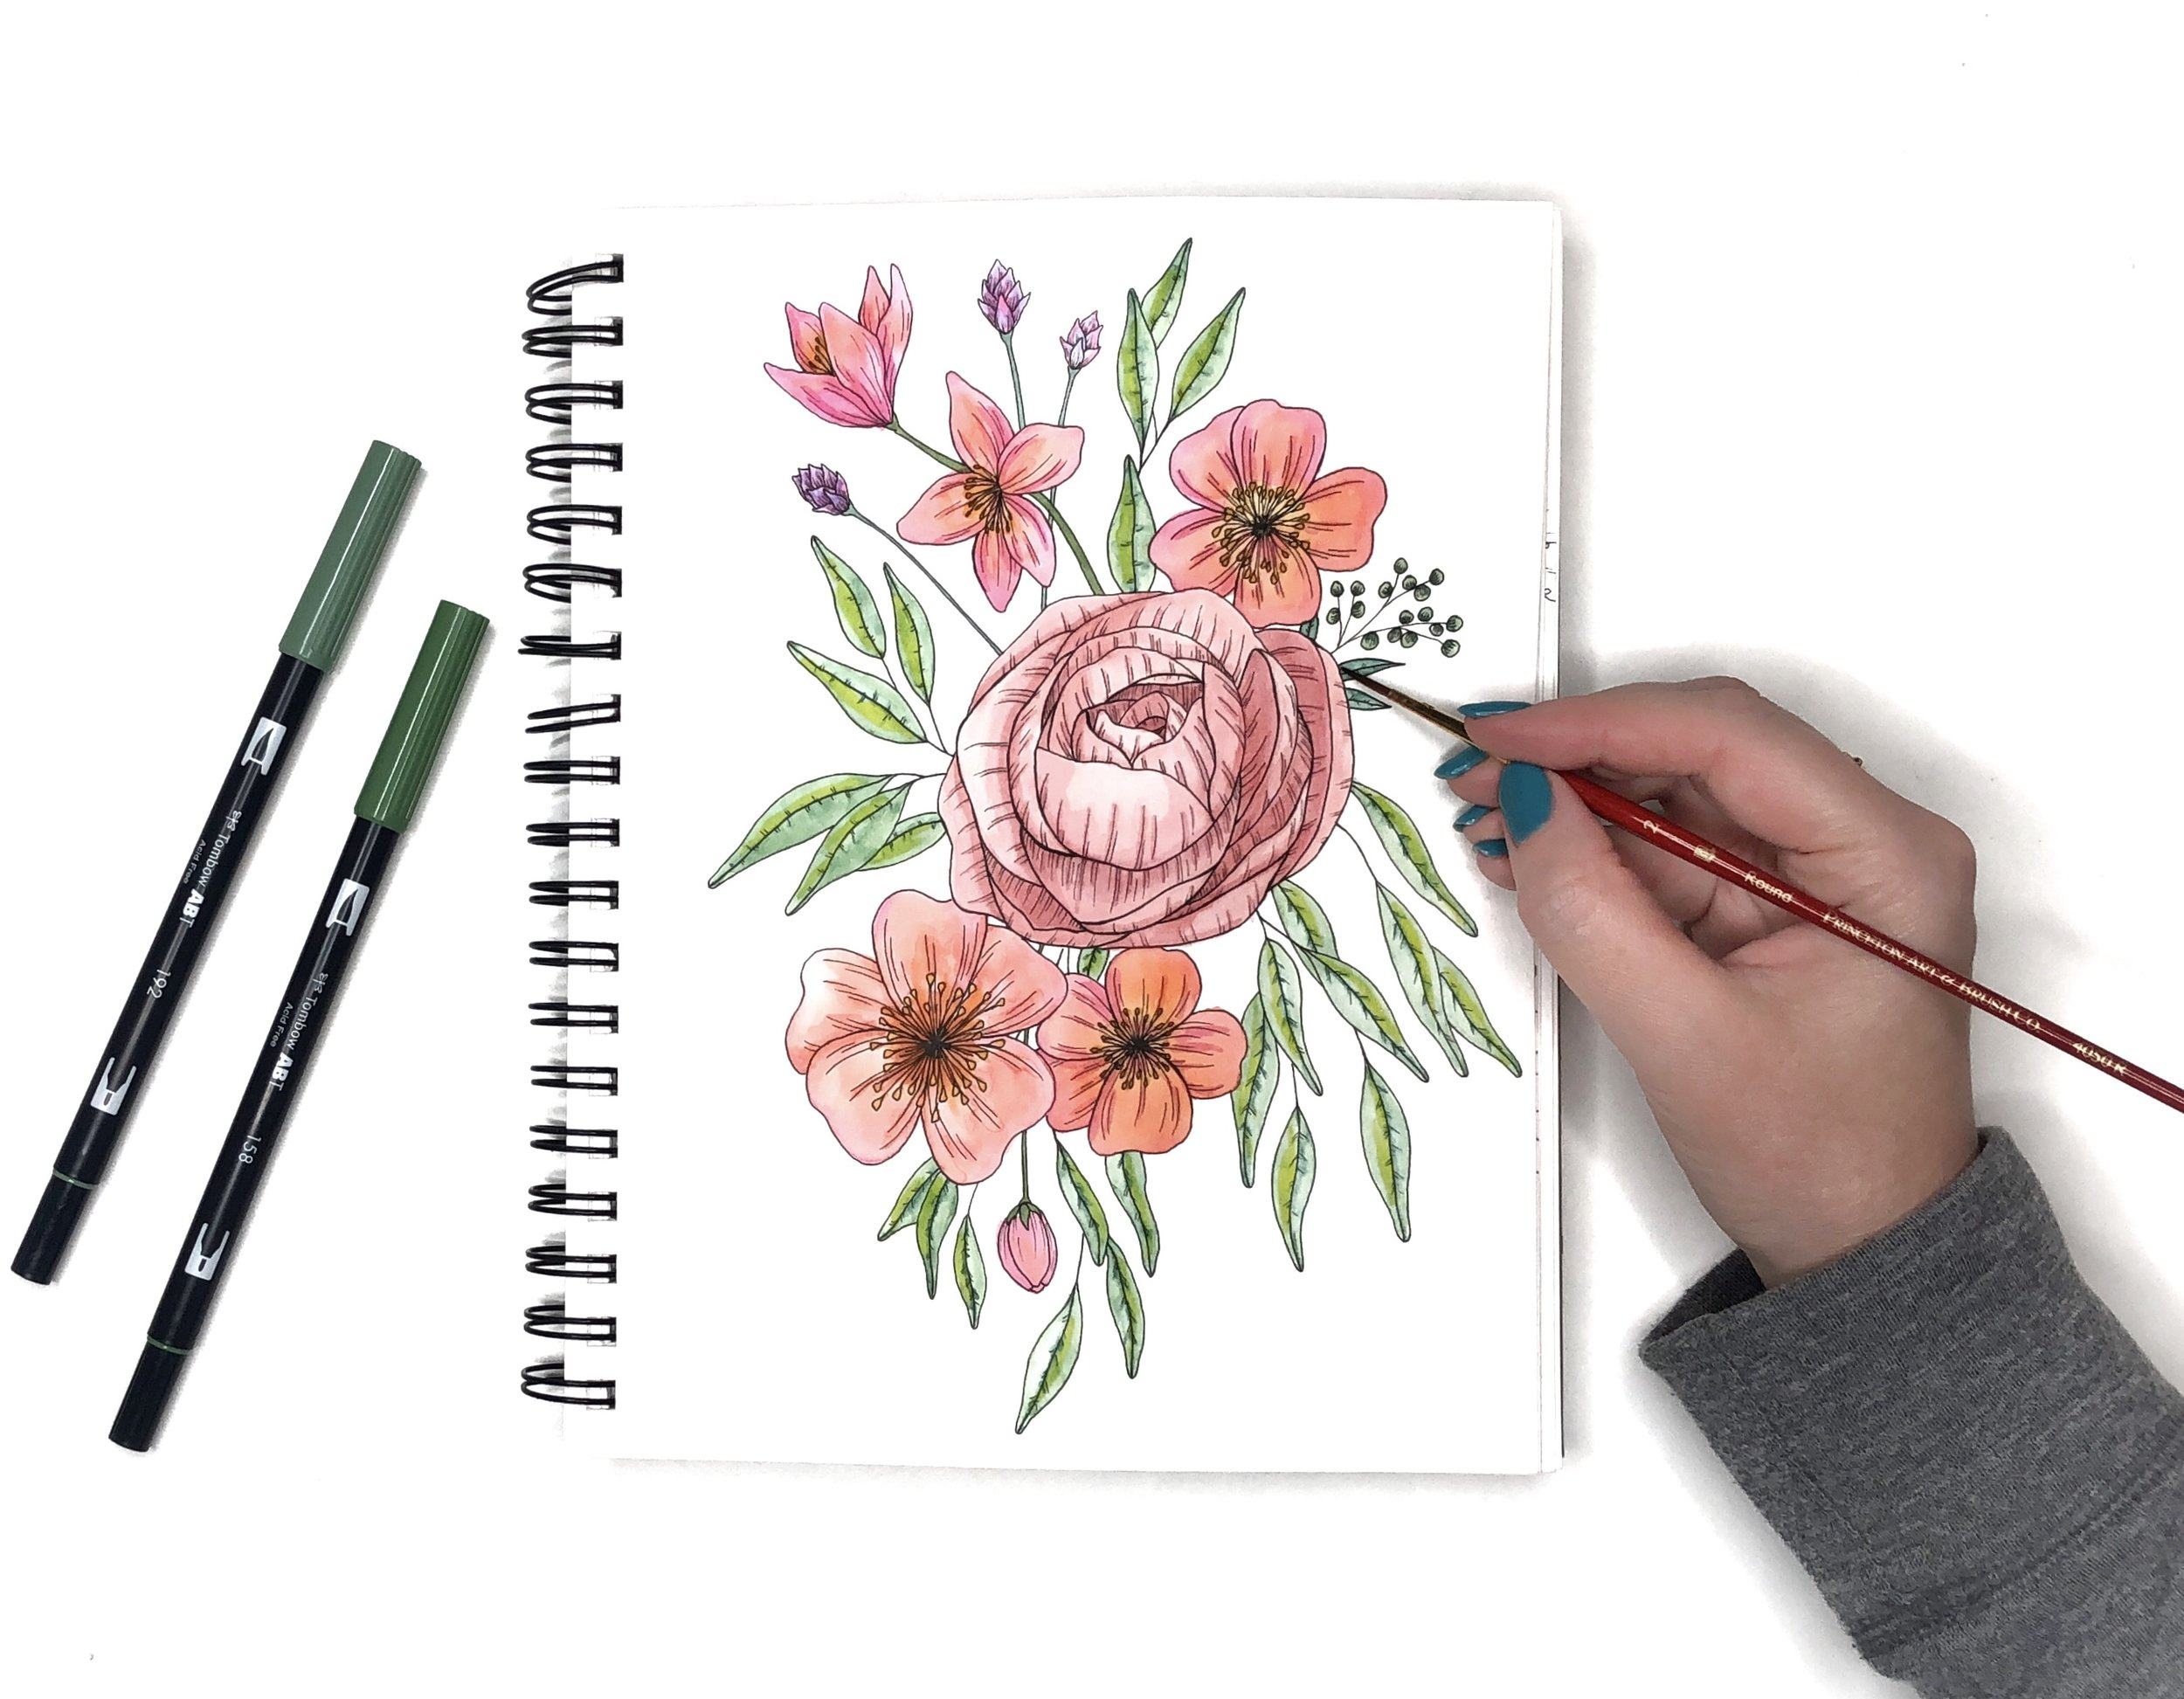 Watercolor Flowers Using Tombow Dual Brush Pens by Jessica Mack of BrownPaperBunny